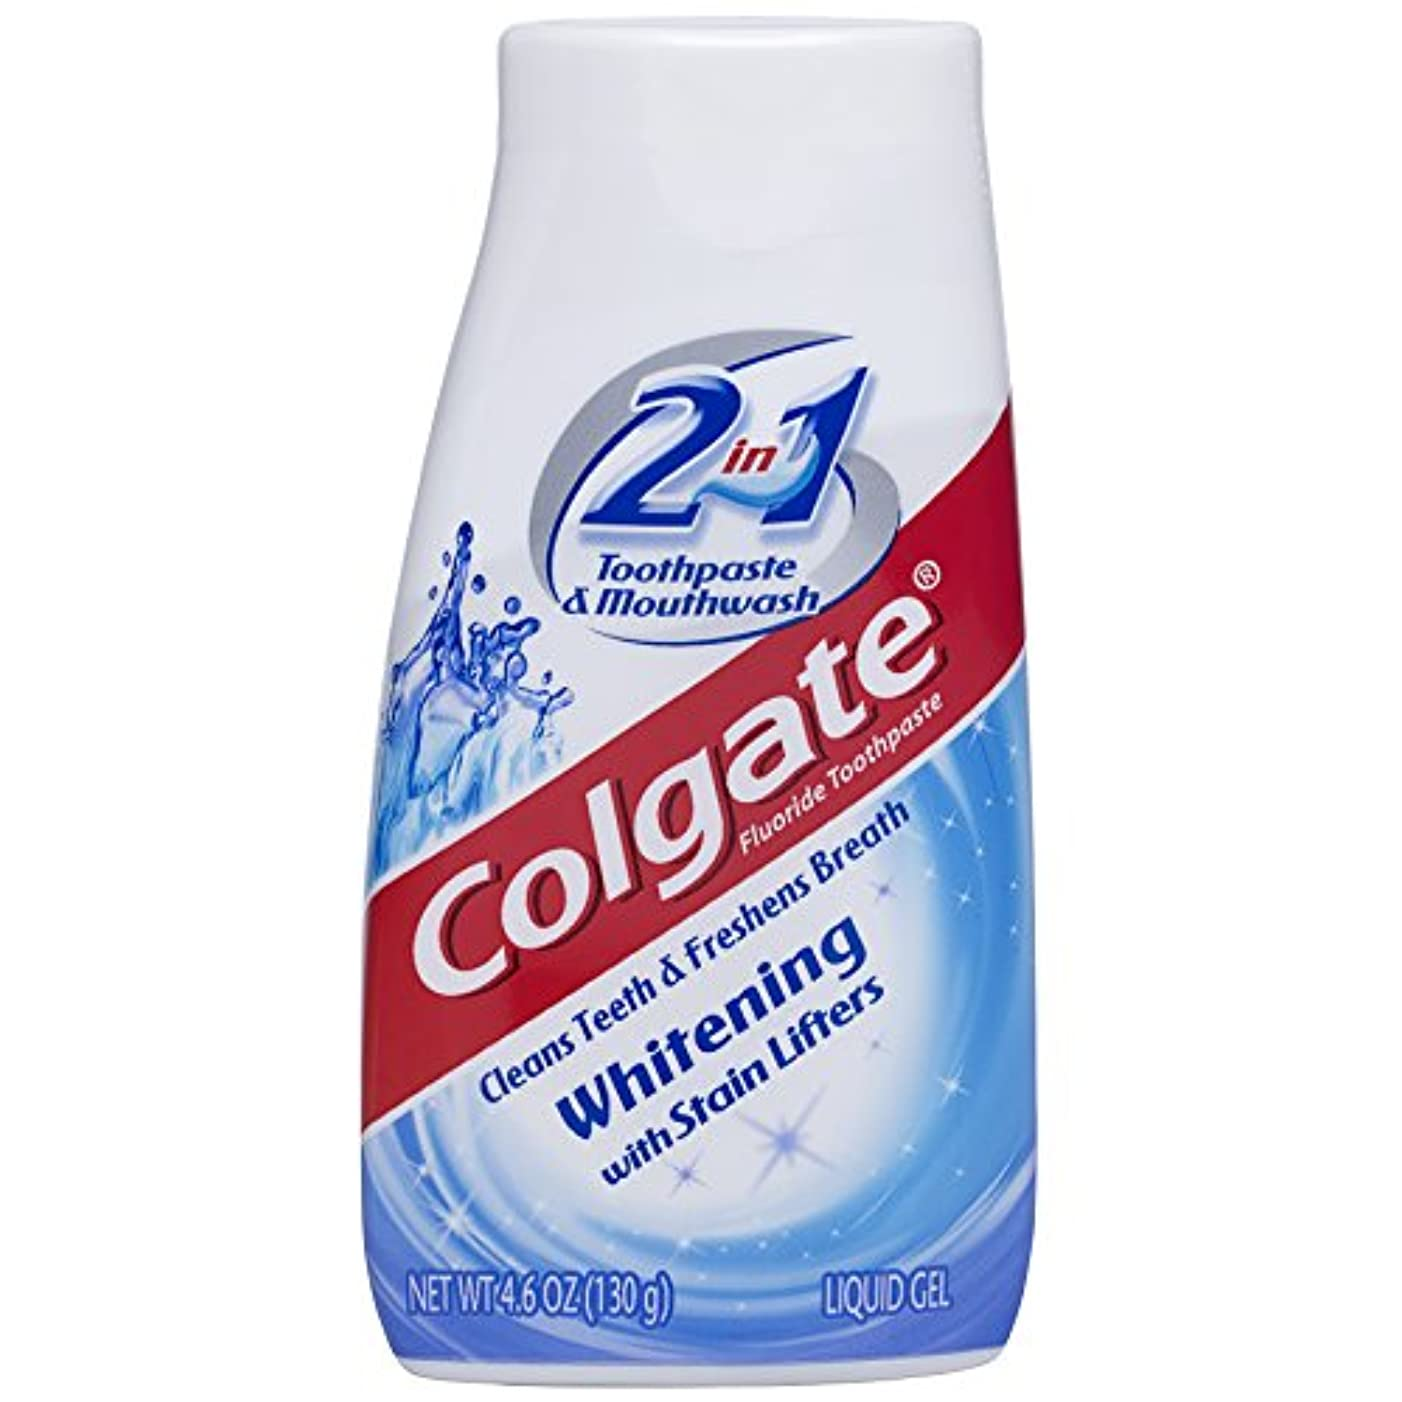 よろしく思想マージ海外直送品Colgate 2 In 1 Toothpaste & Mouthwash Whitening, 4.6 oz by Colgate